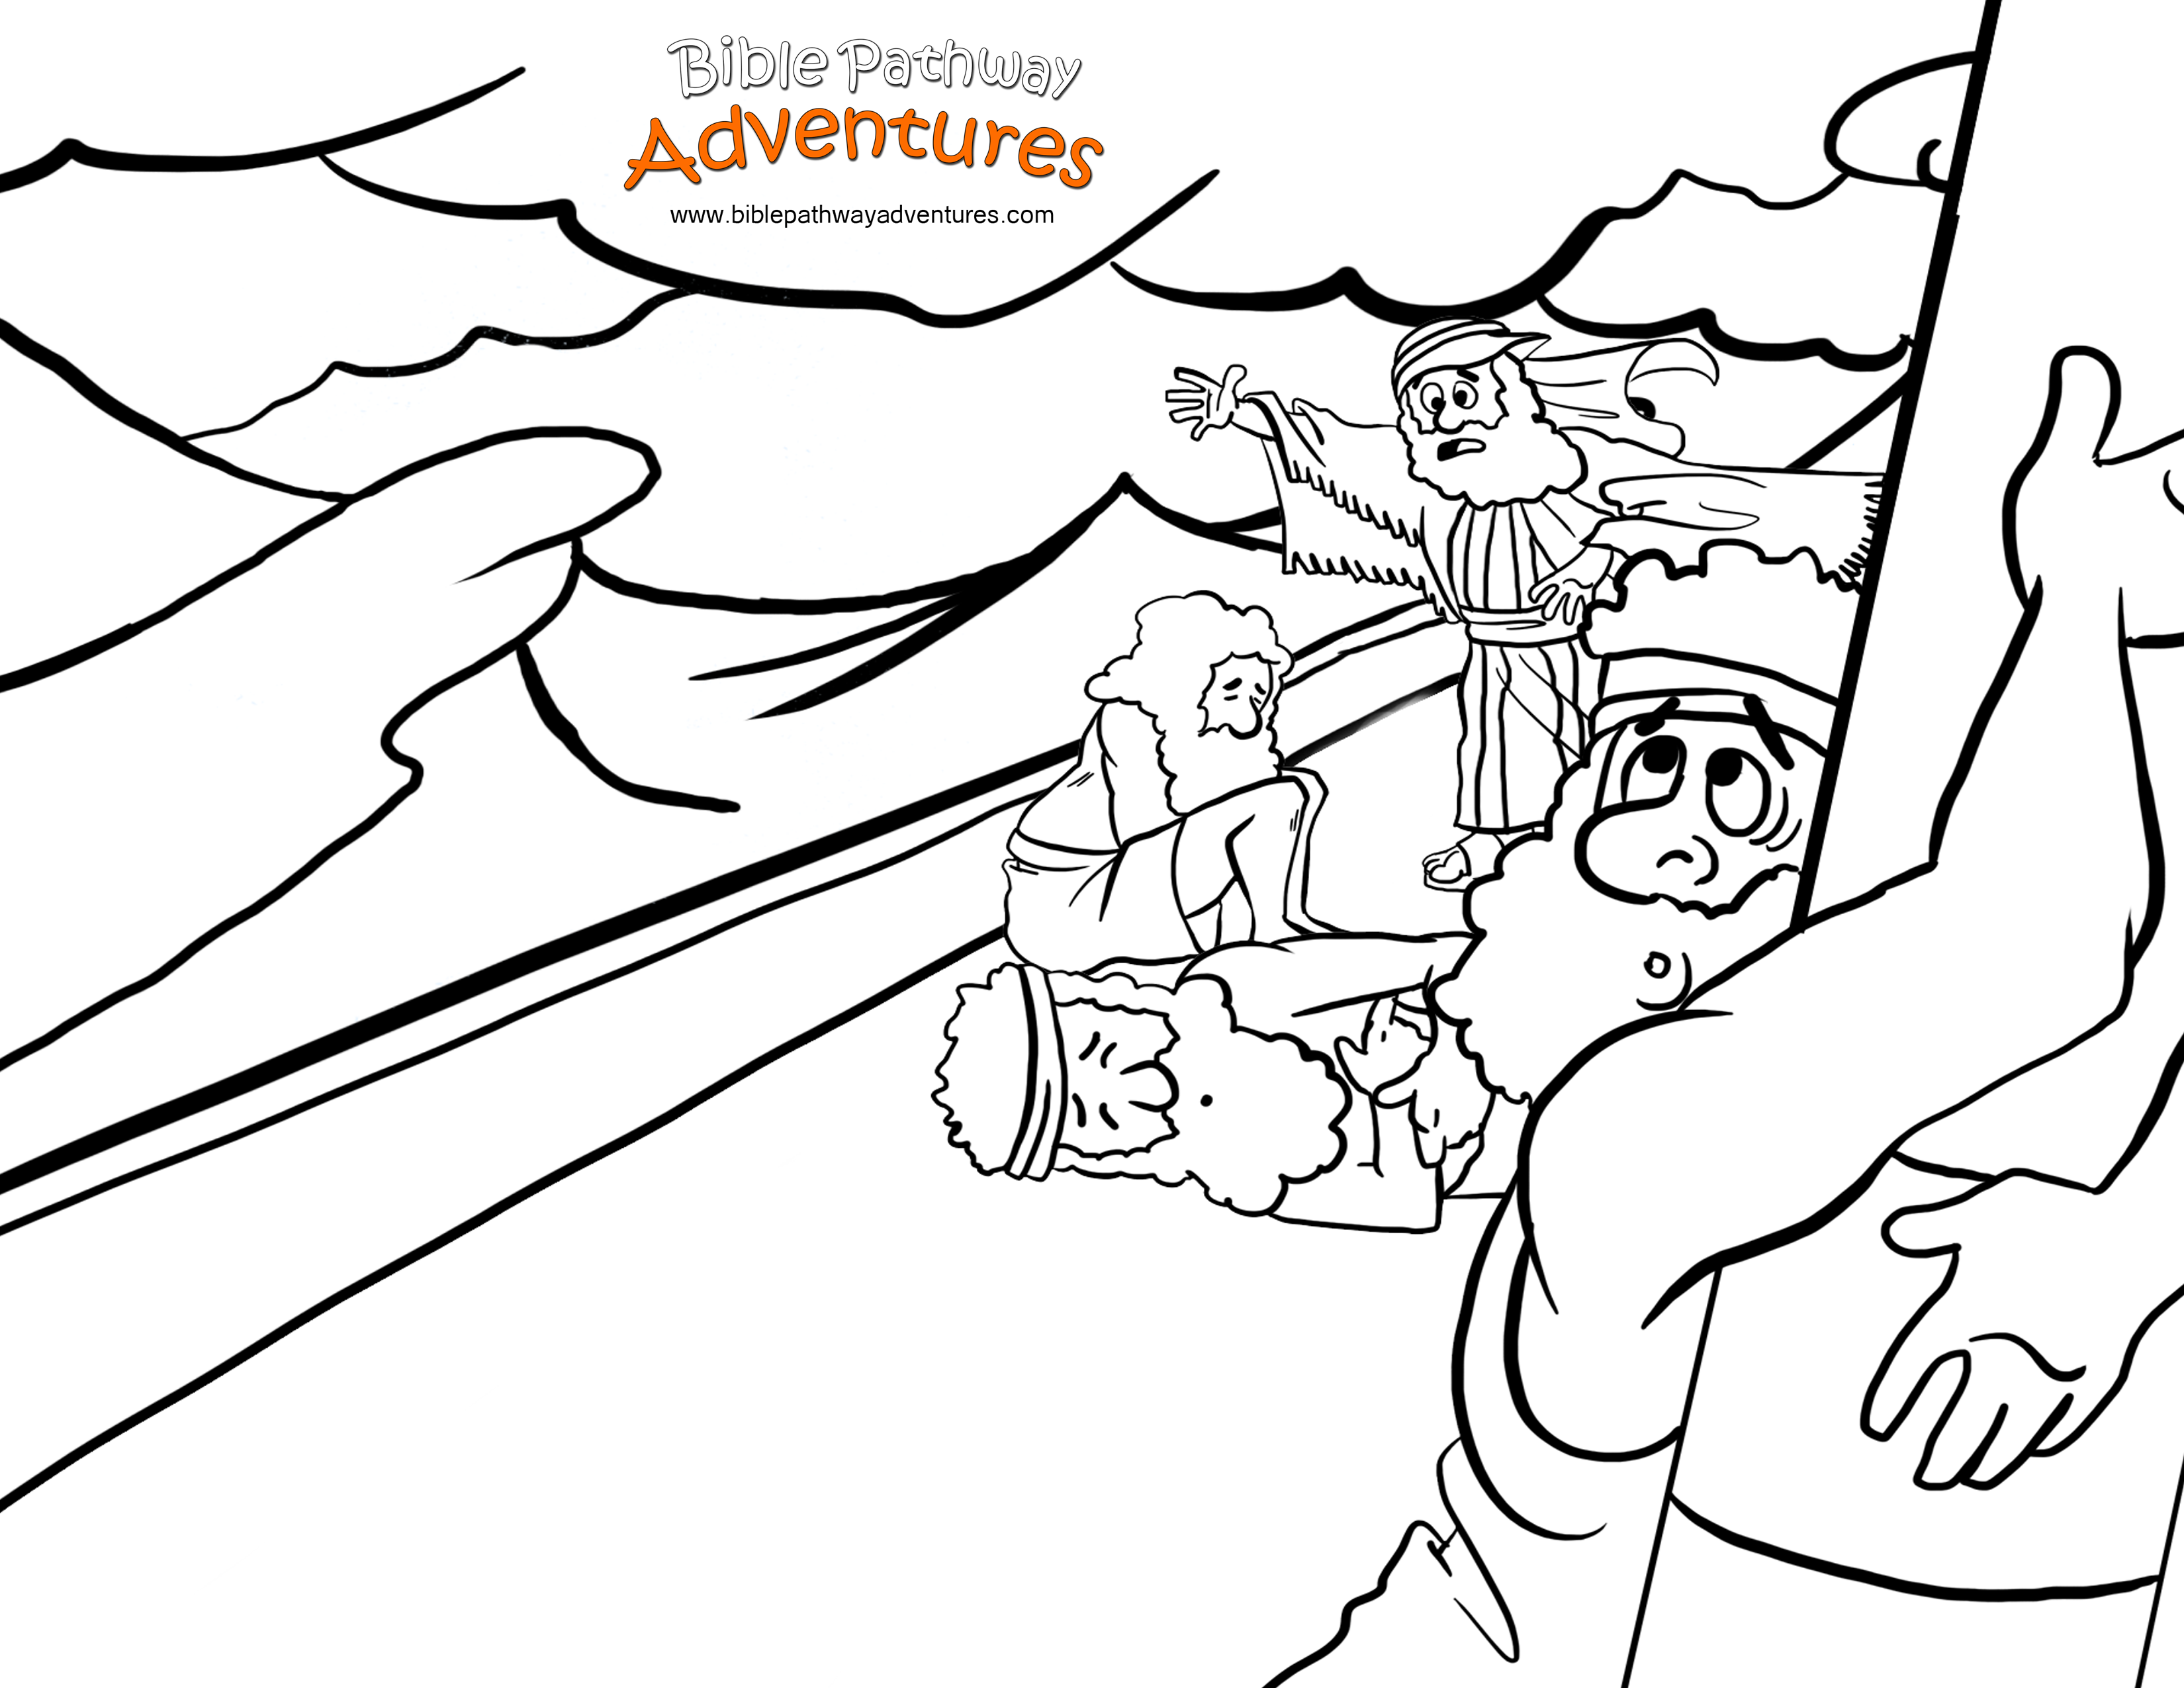 Childrens coloring sheet of saul and ananias -  A Coloring Page For Kids From The Story Shipwrecked Paul And The Sailors